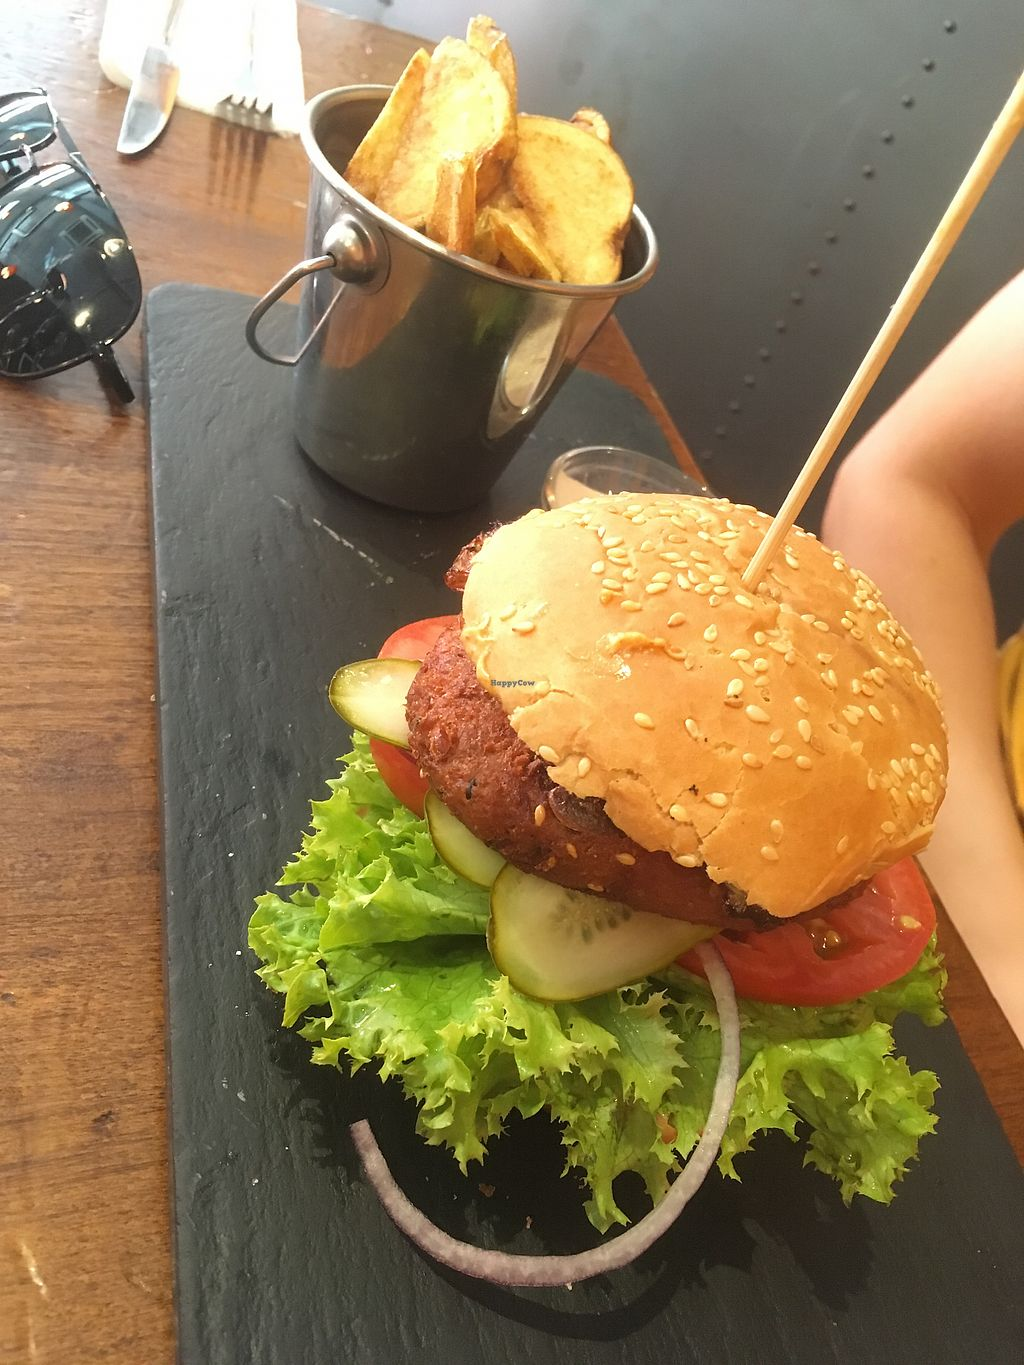 """Photo of Fat Pumpkin  by <a href=""""/members/profile/SuzyJones"""">SuzyJones</a> <br/>chickpea burger  <br/> August 12, 2017  - <a href='/contact/abuse/image/53101/291935'>Report</a>"""